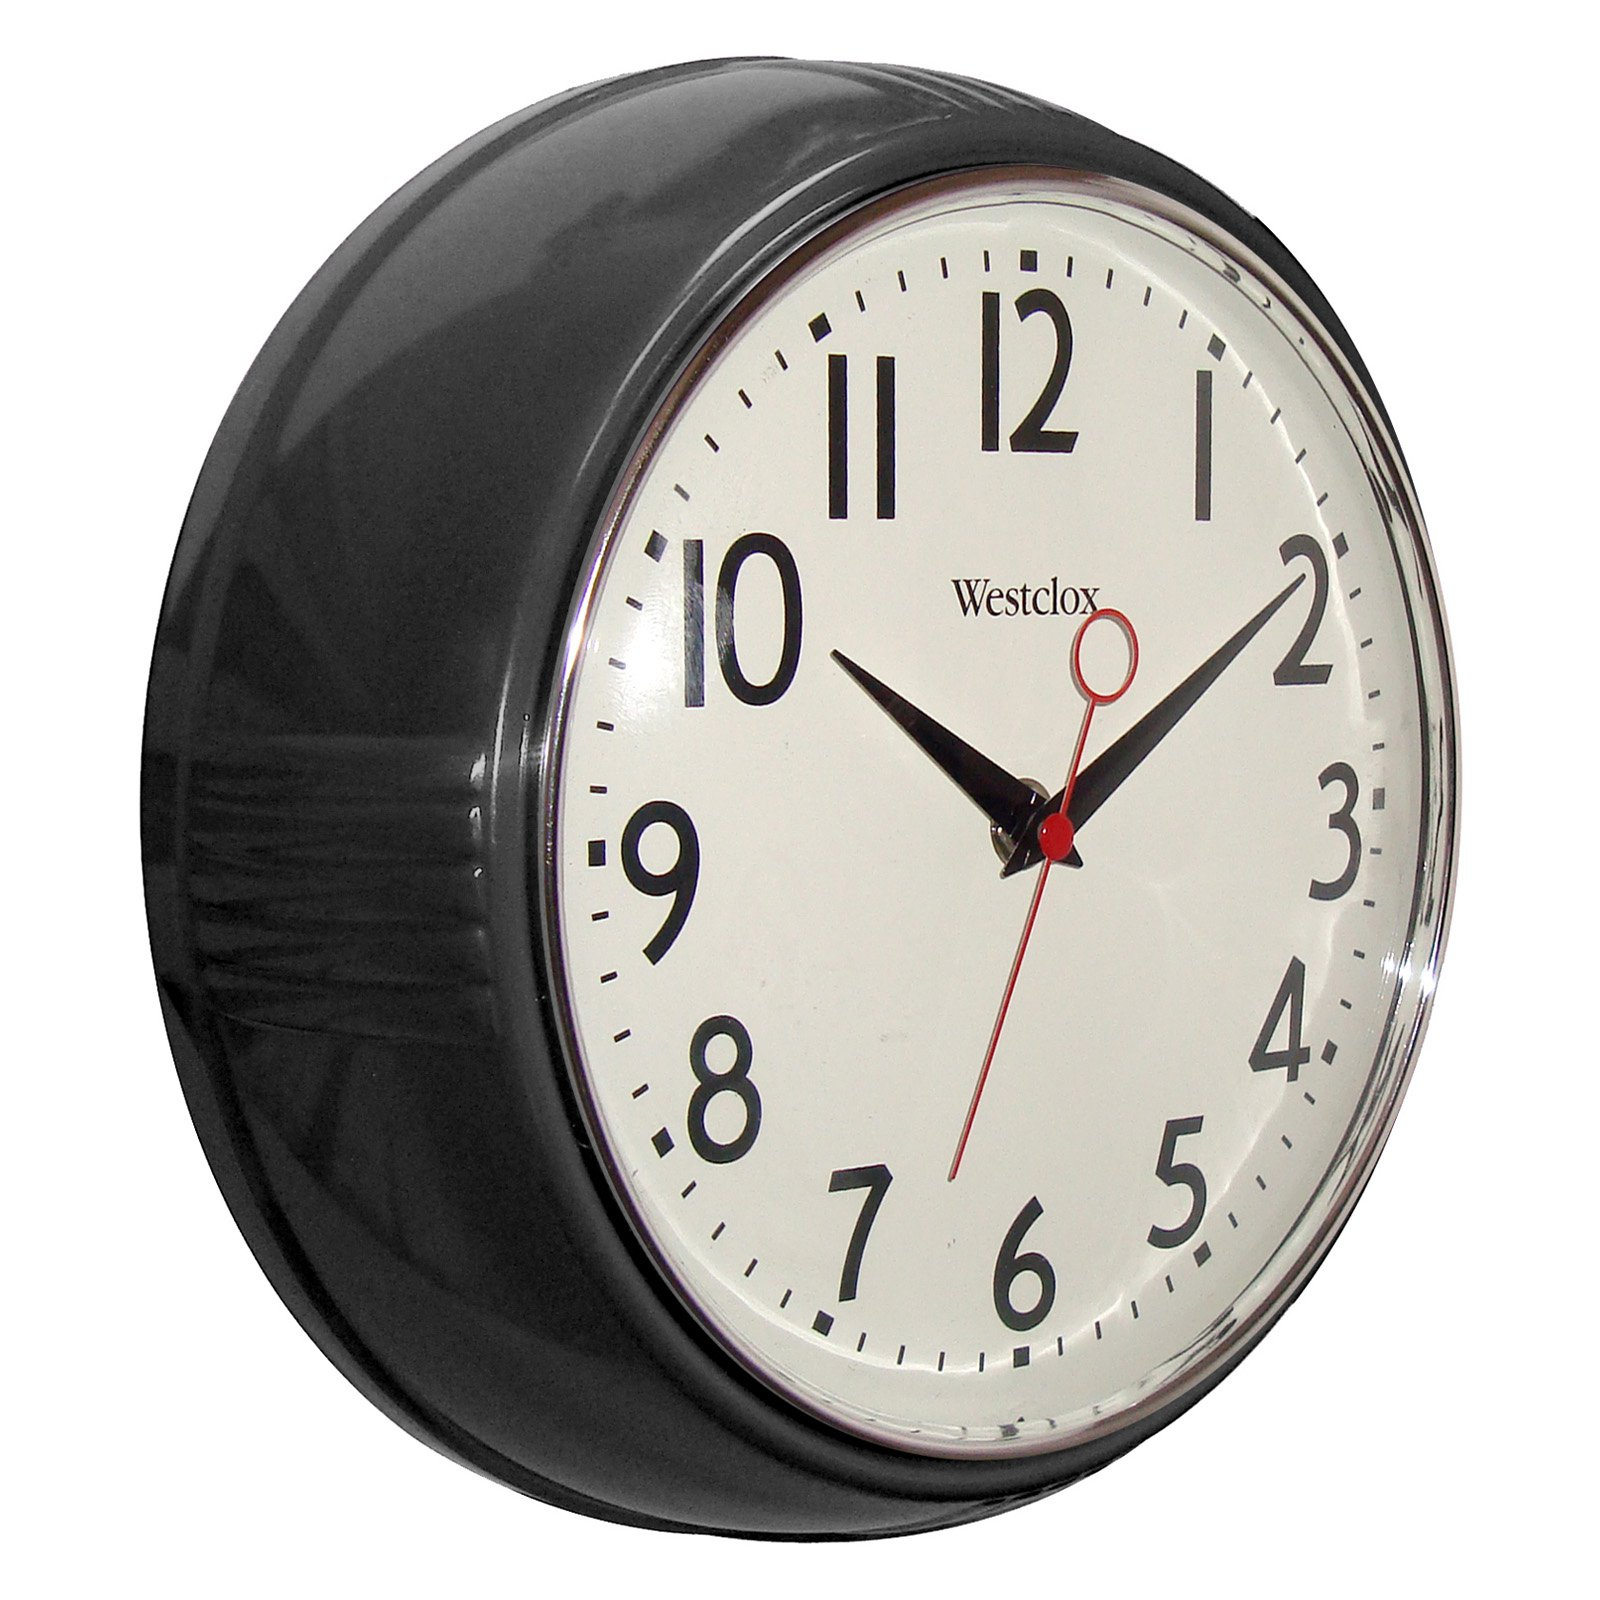 "Westclox 32042R Retro 9.5"" Round Kitchen Wall Clock"